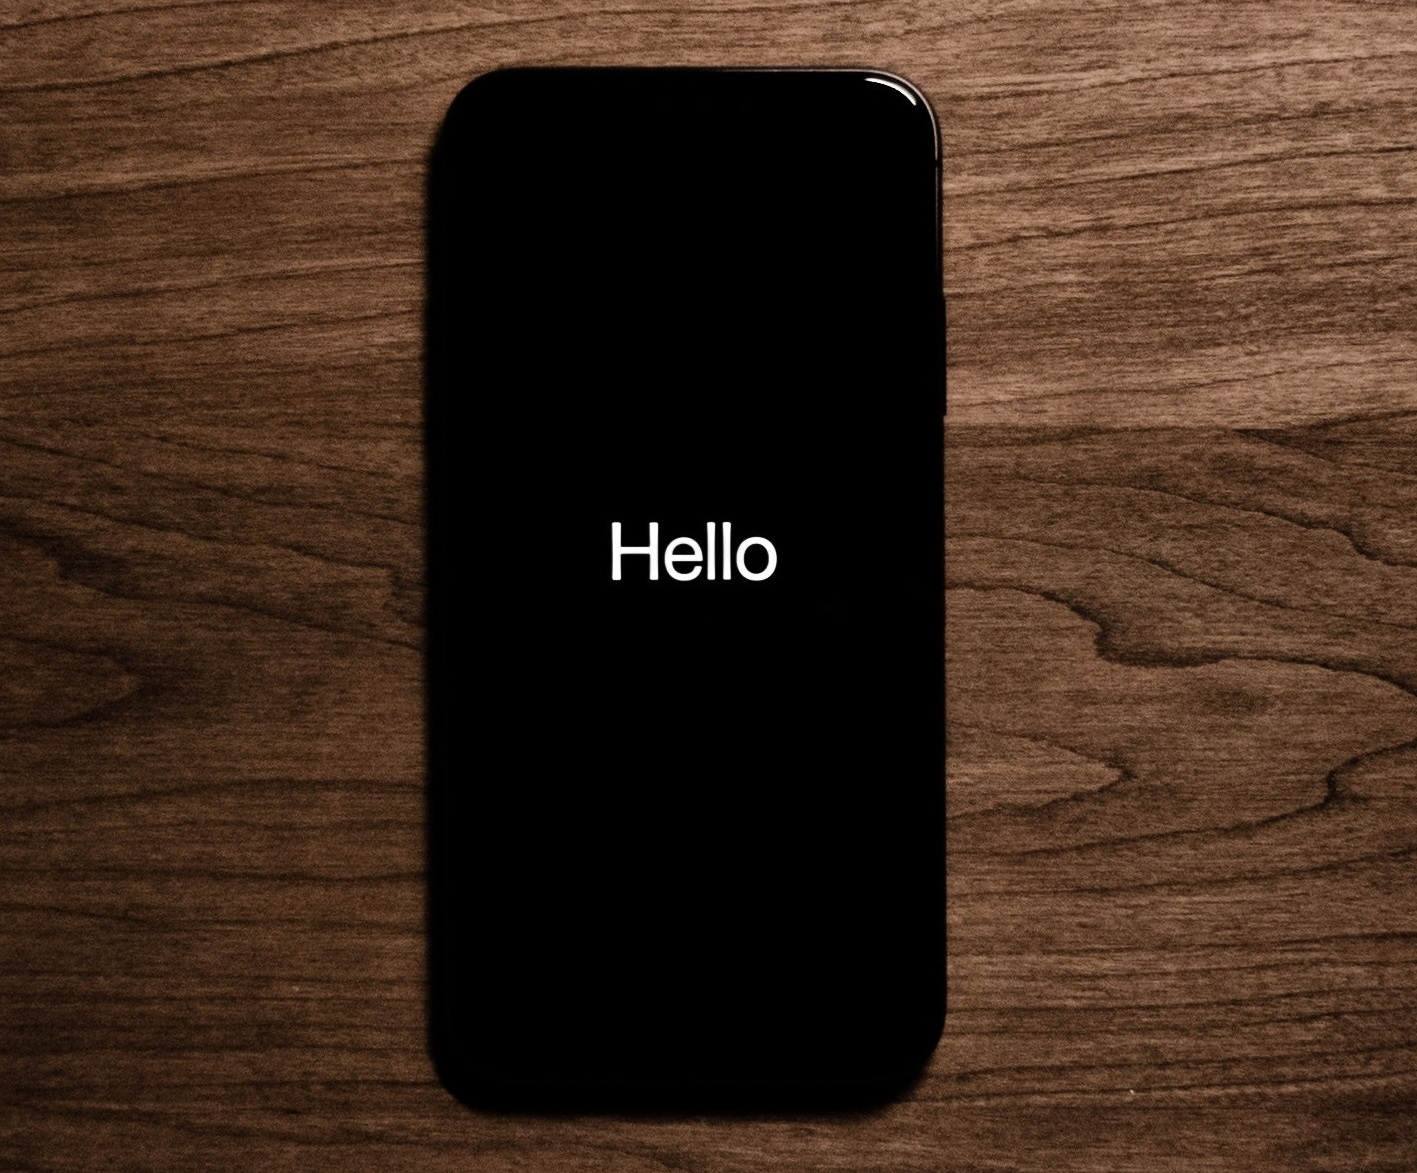 A black iphone on a wooden table displaying the word 'hello' in white letters